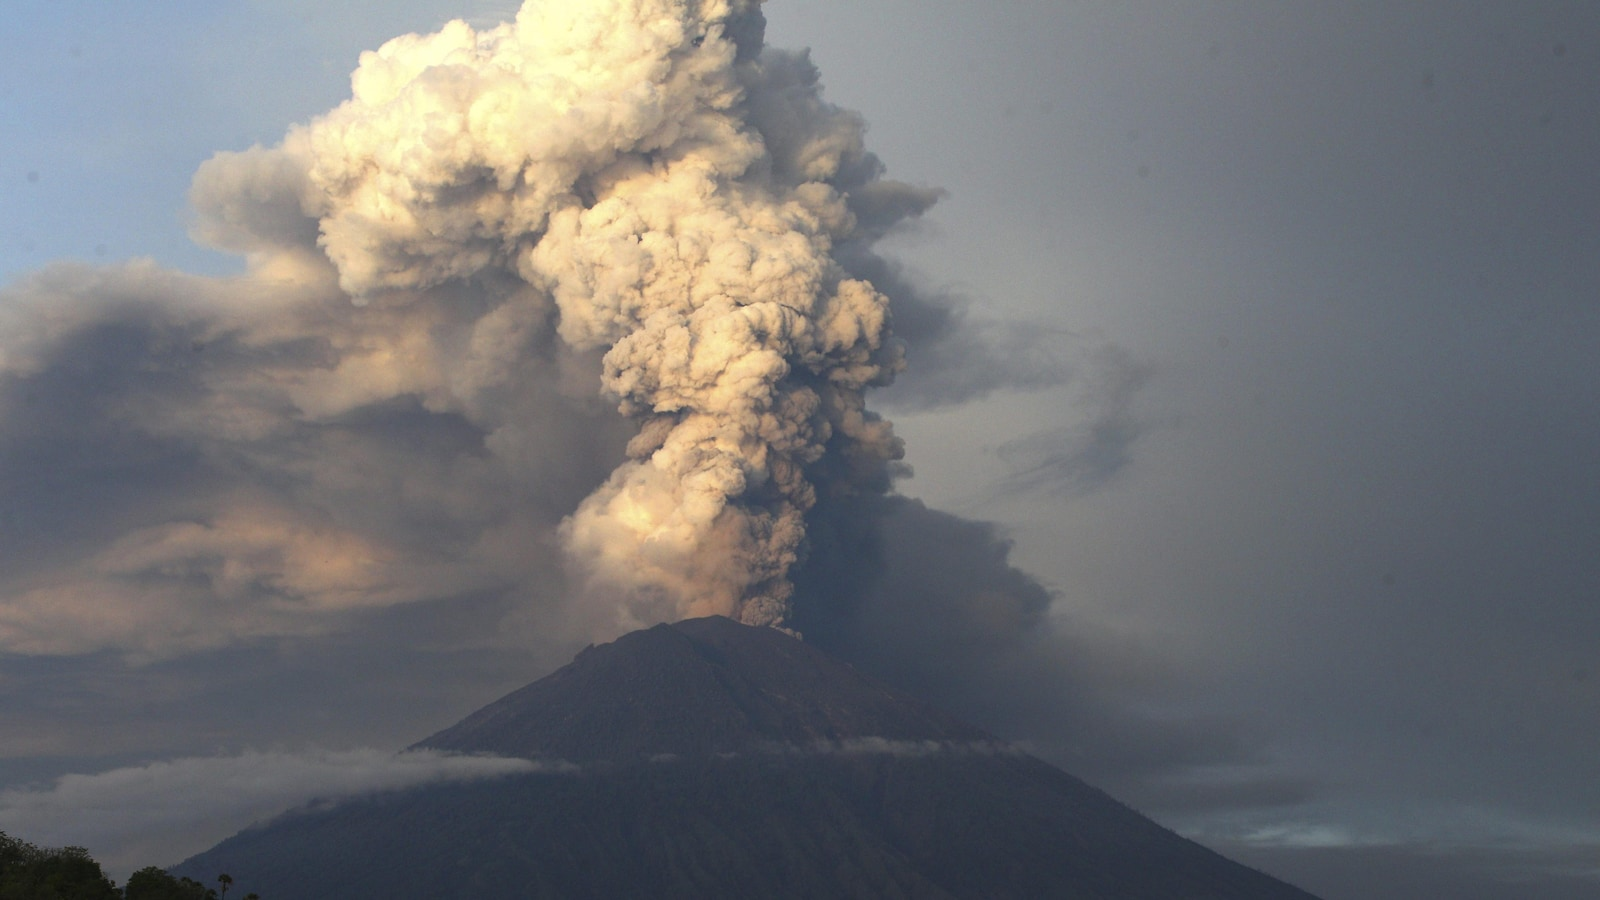 Le volcan Agung crache d'immenses nuages de cendres.